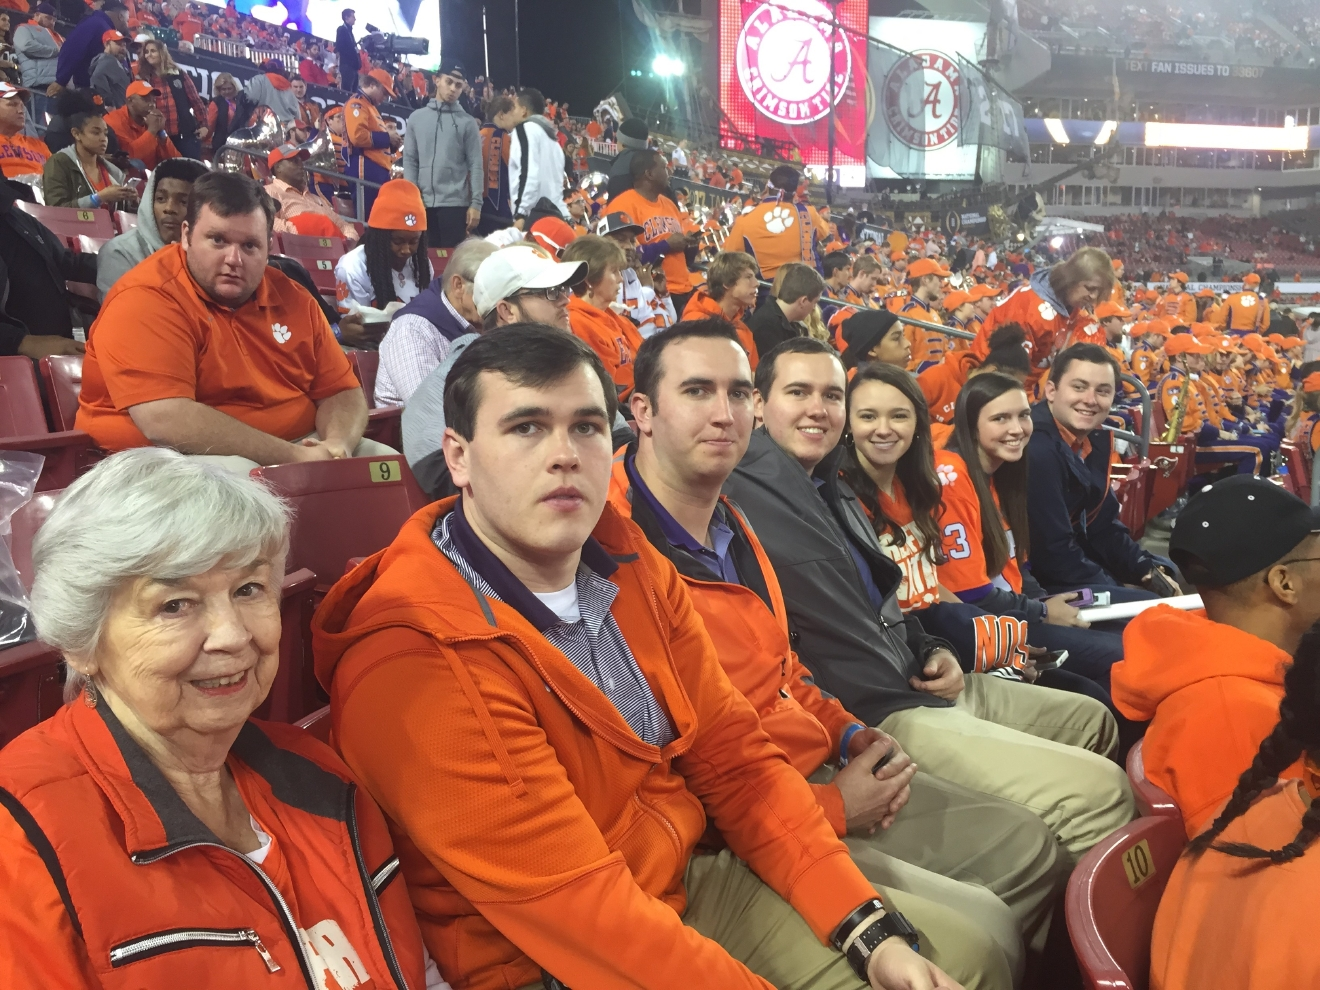 Renfrow Family watching the National Championship game.  (Photo Credit: Suzanne Renfrow)